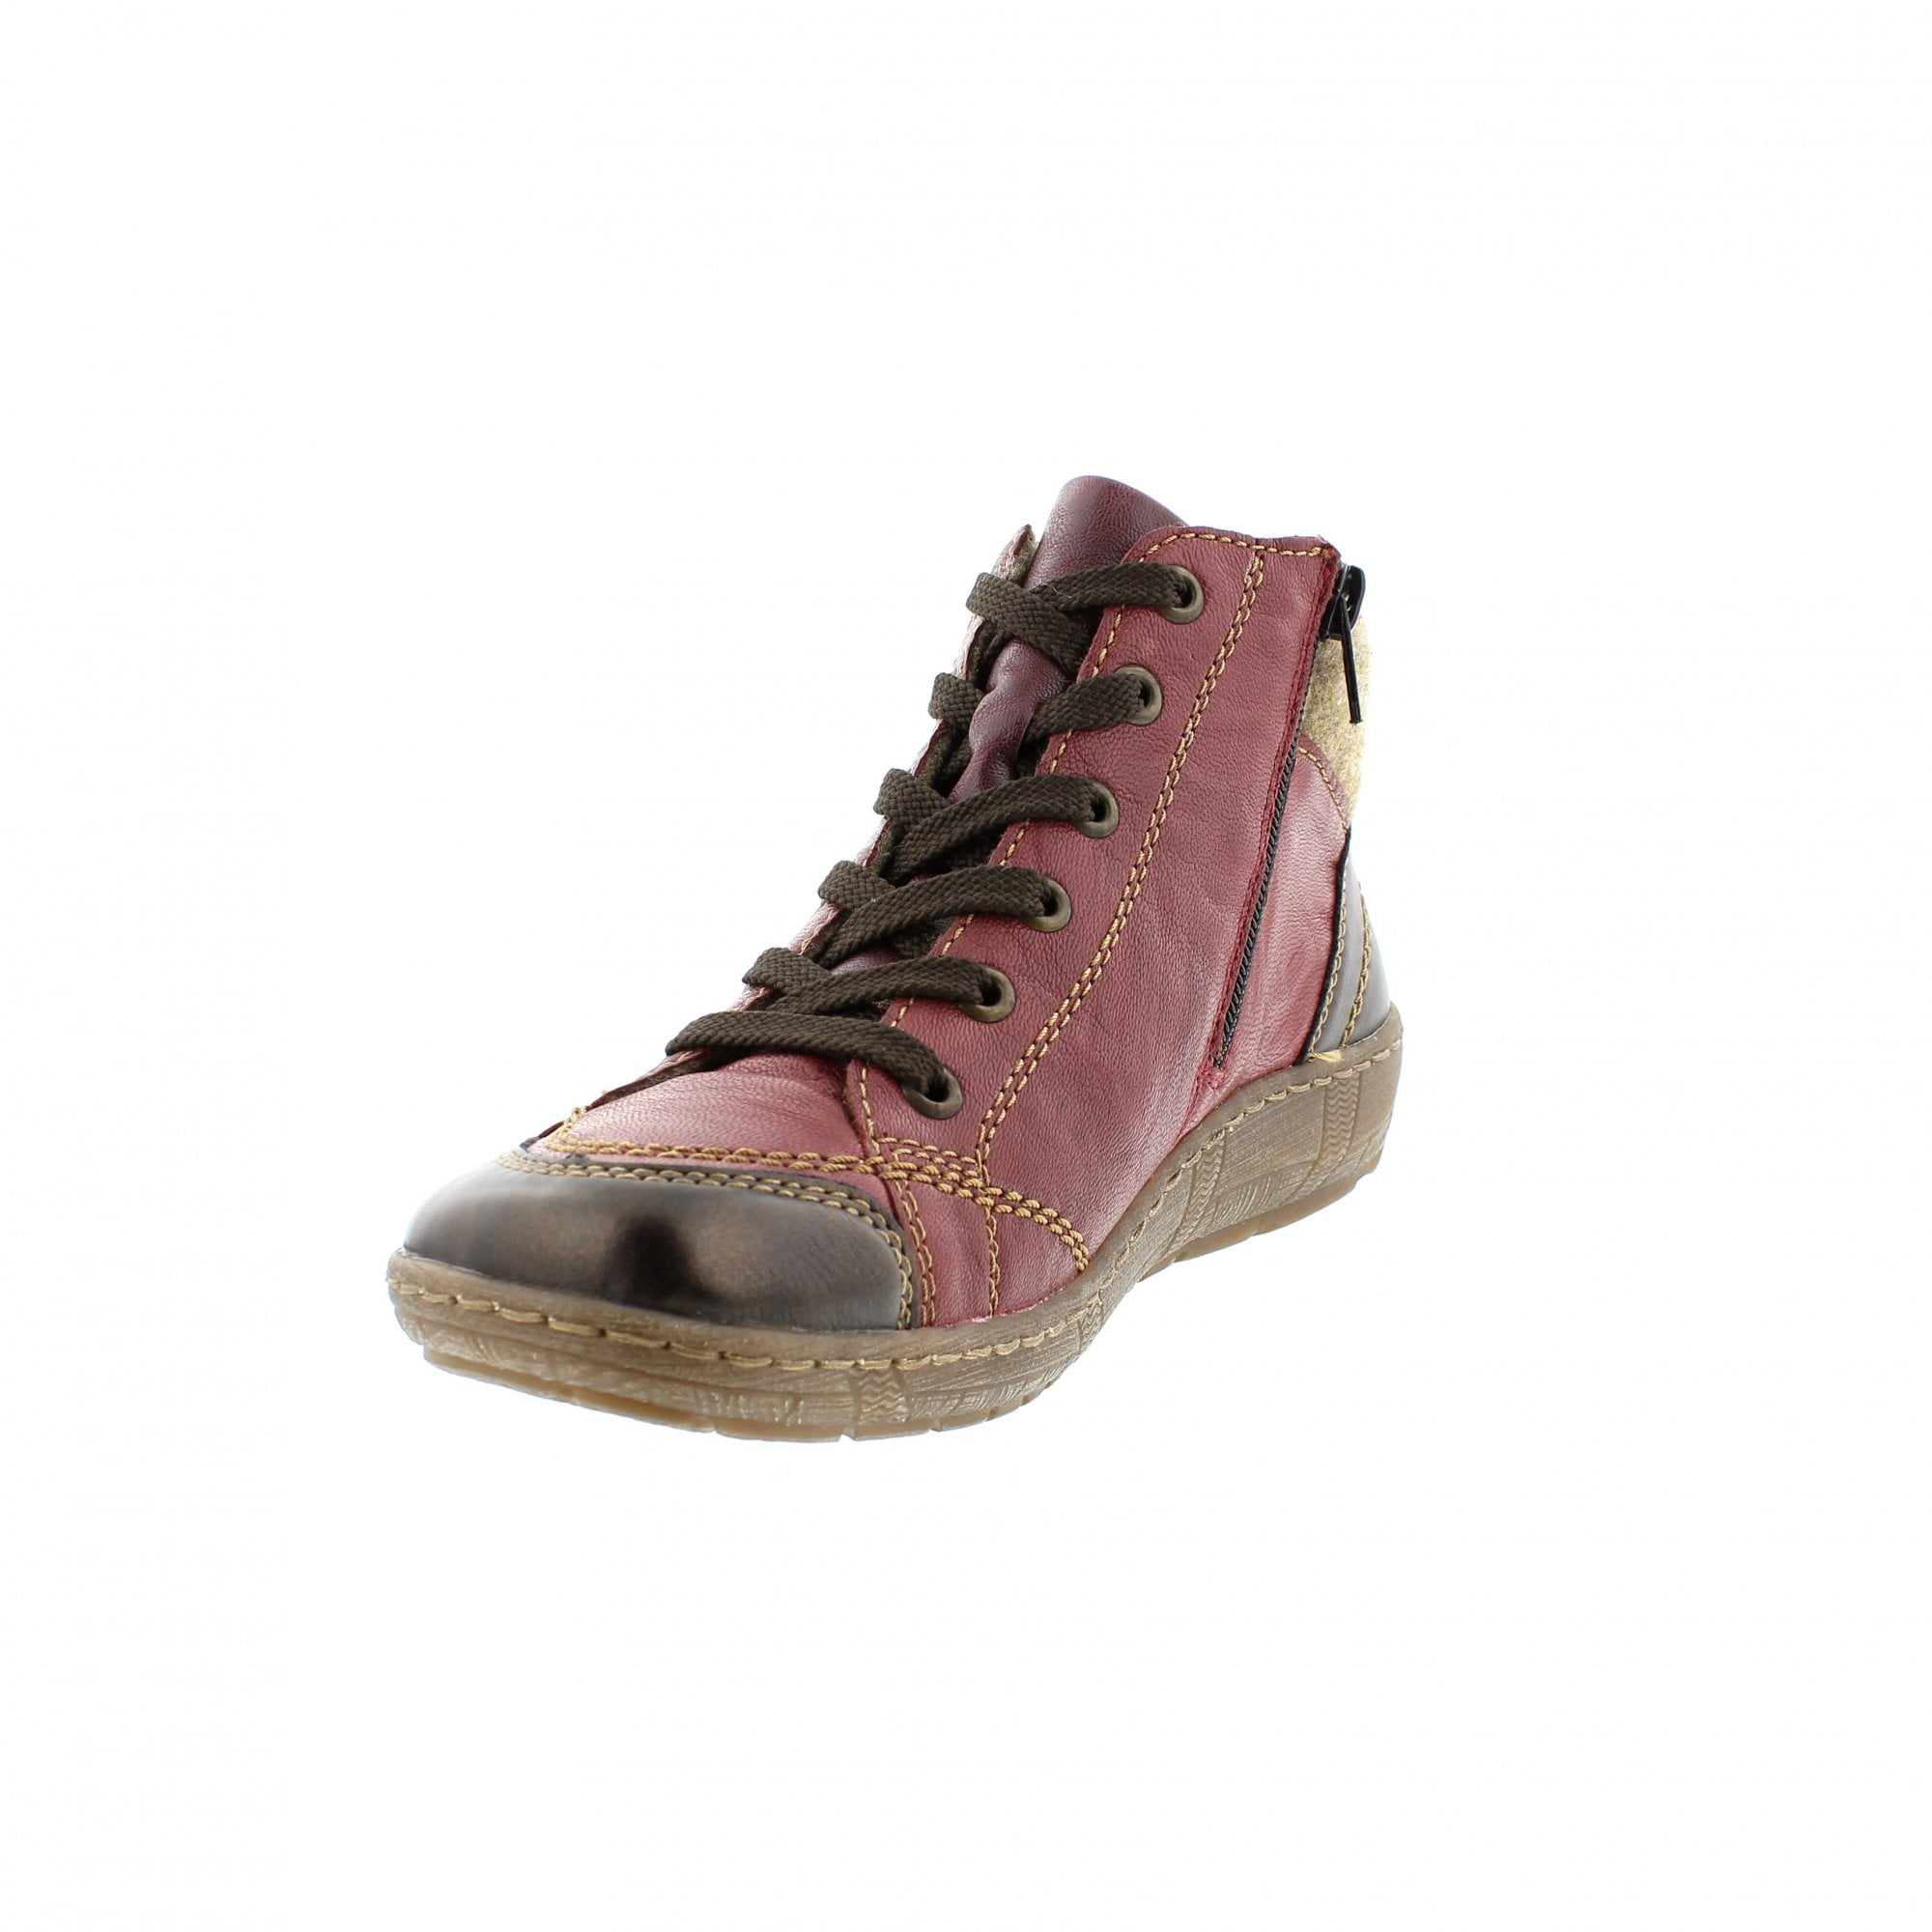 54965d389308 Remonte D3886-35 Womens Ankle Boots